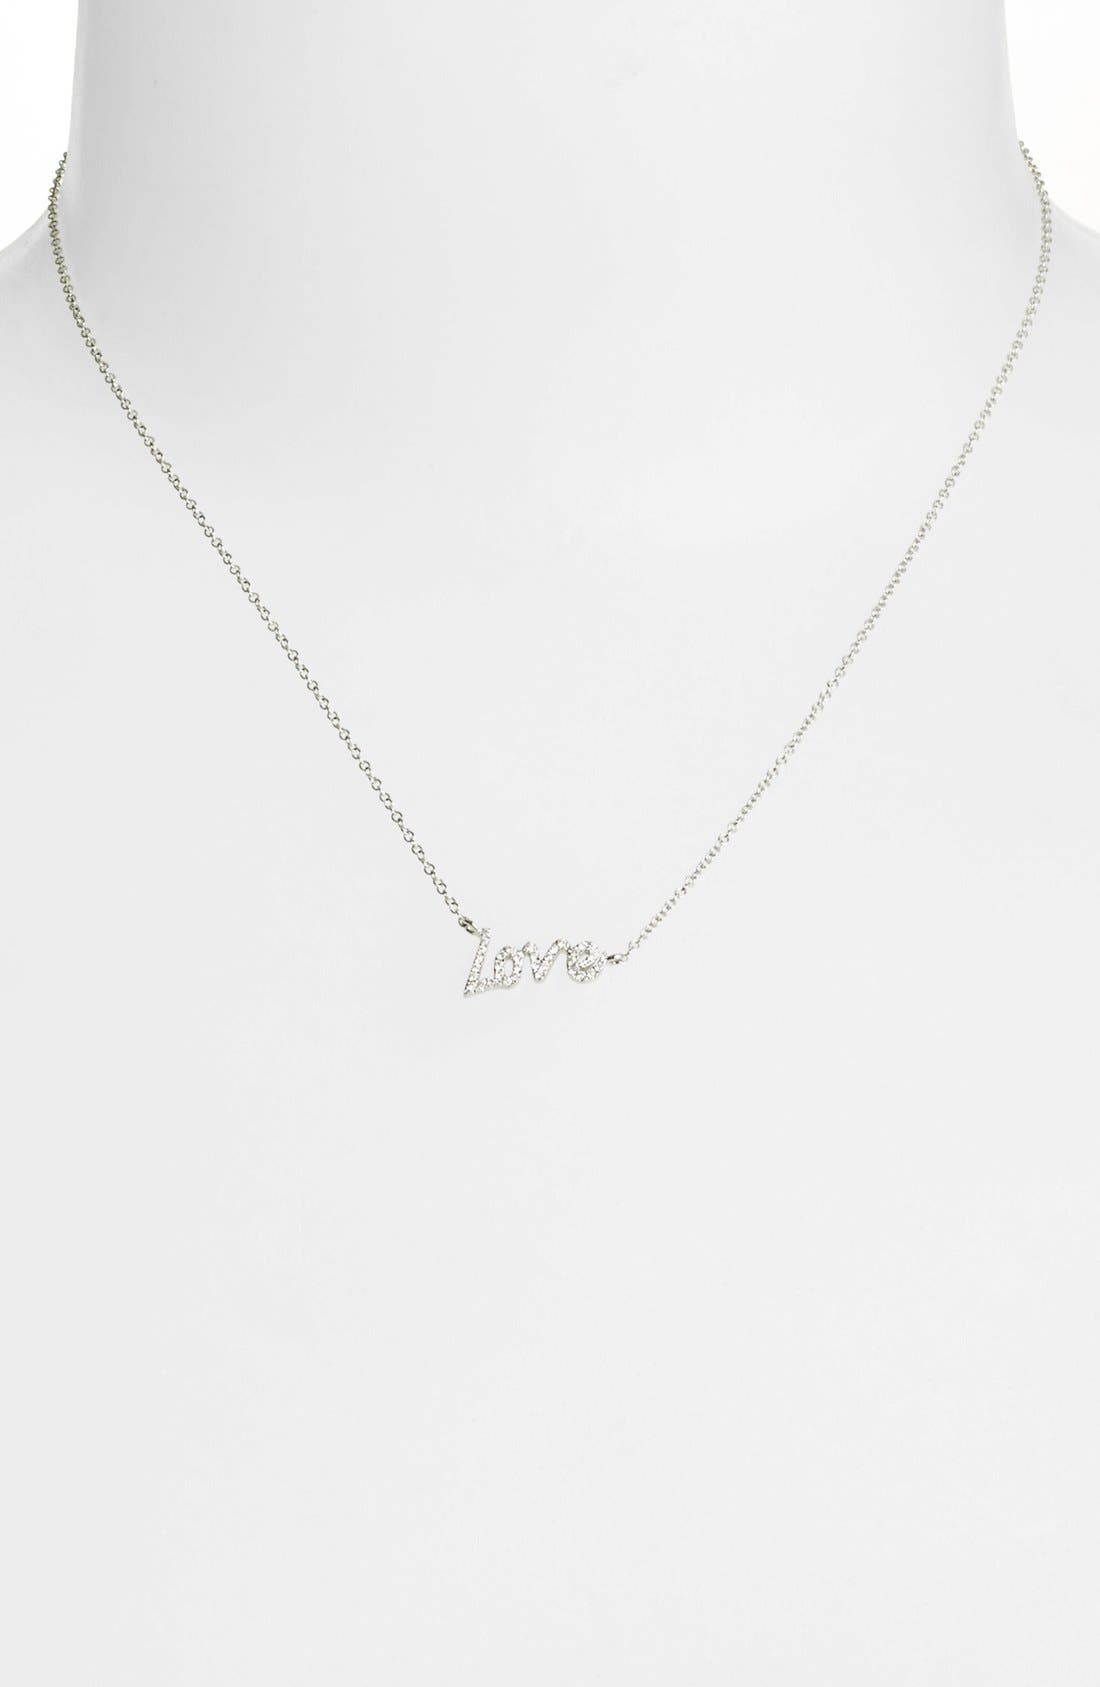 Alternate Image 2  - MeiraT 'Dazzling' Diamond Love Pendant Necklace